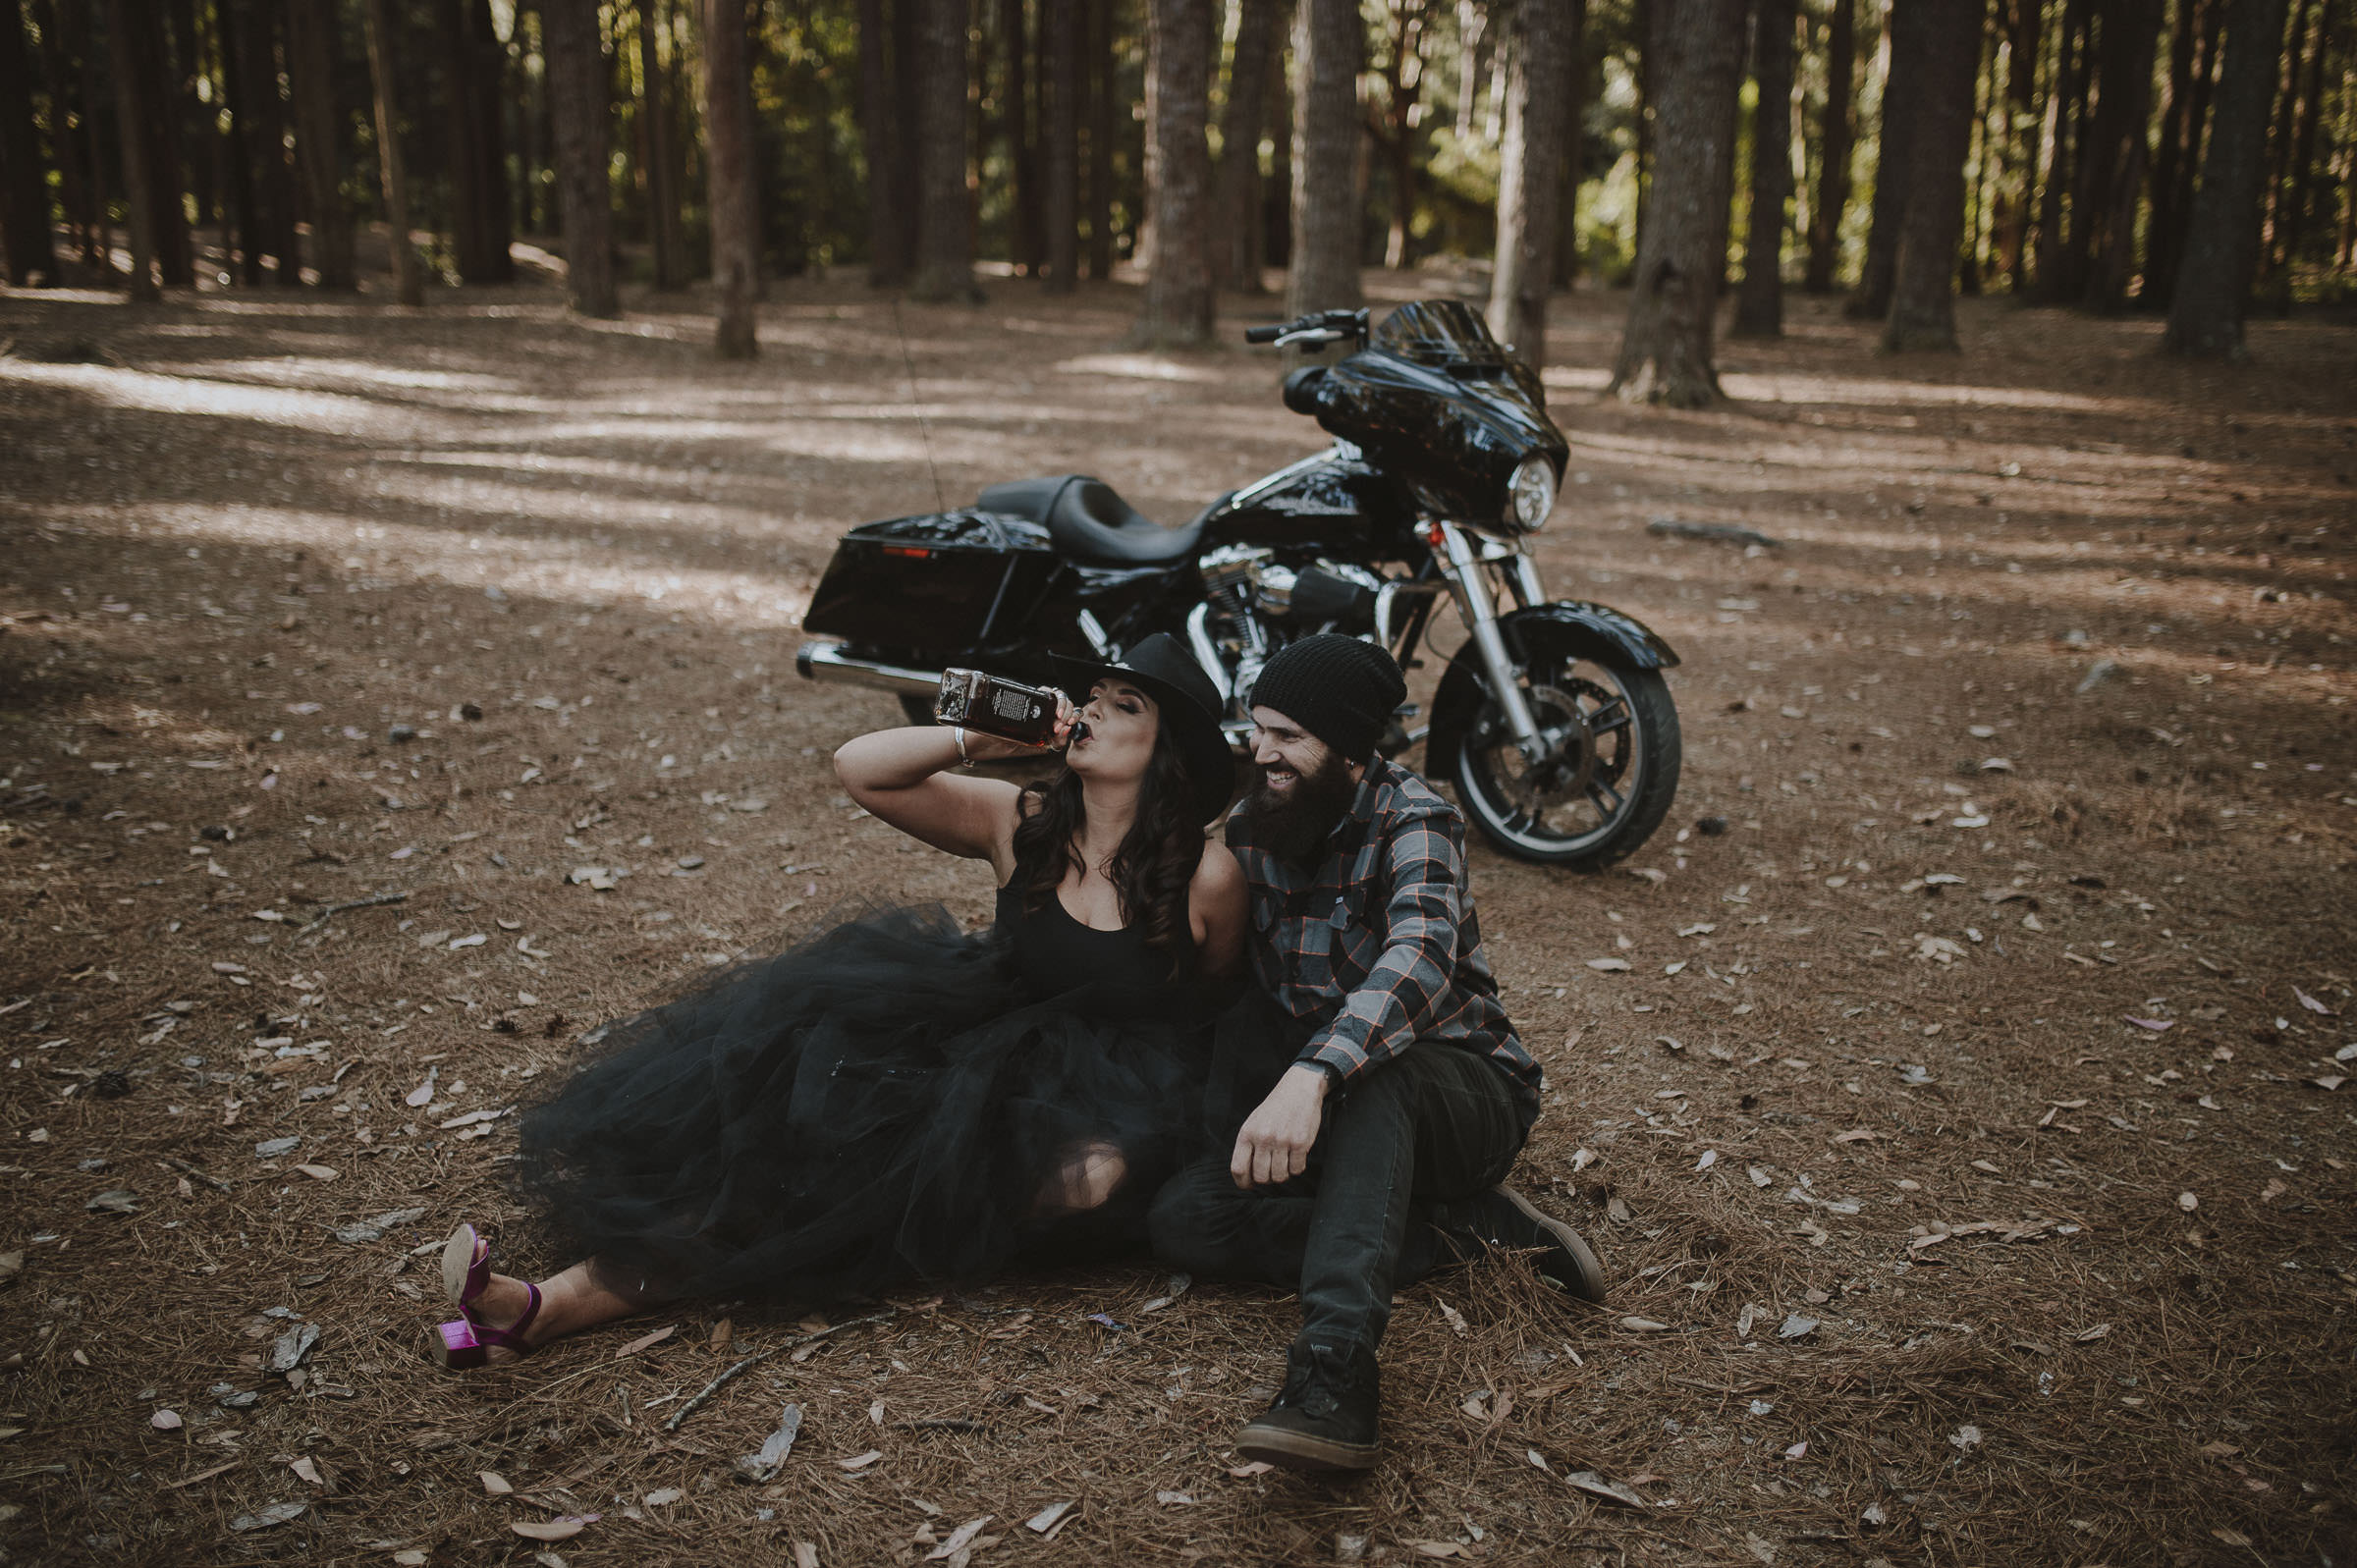 Madeline_Jamie_Watagens_Pine_Forest_Engagement_Shoot_Blog-13.jpg